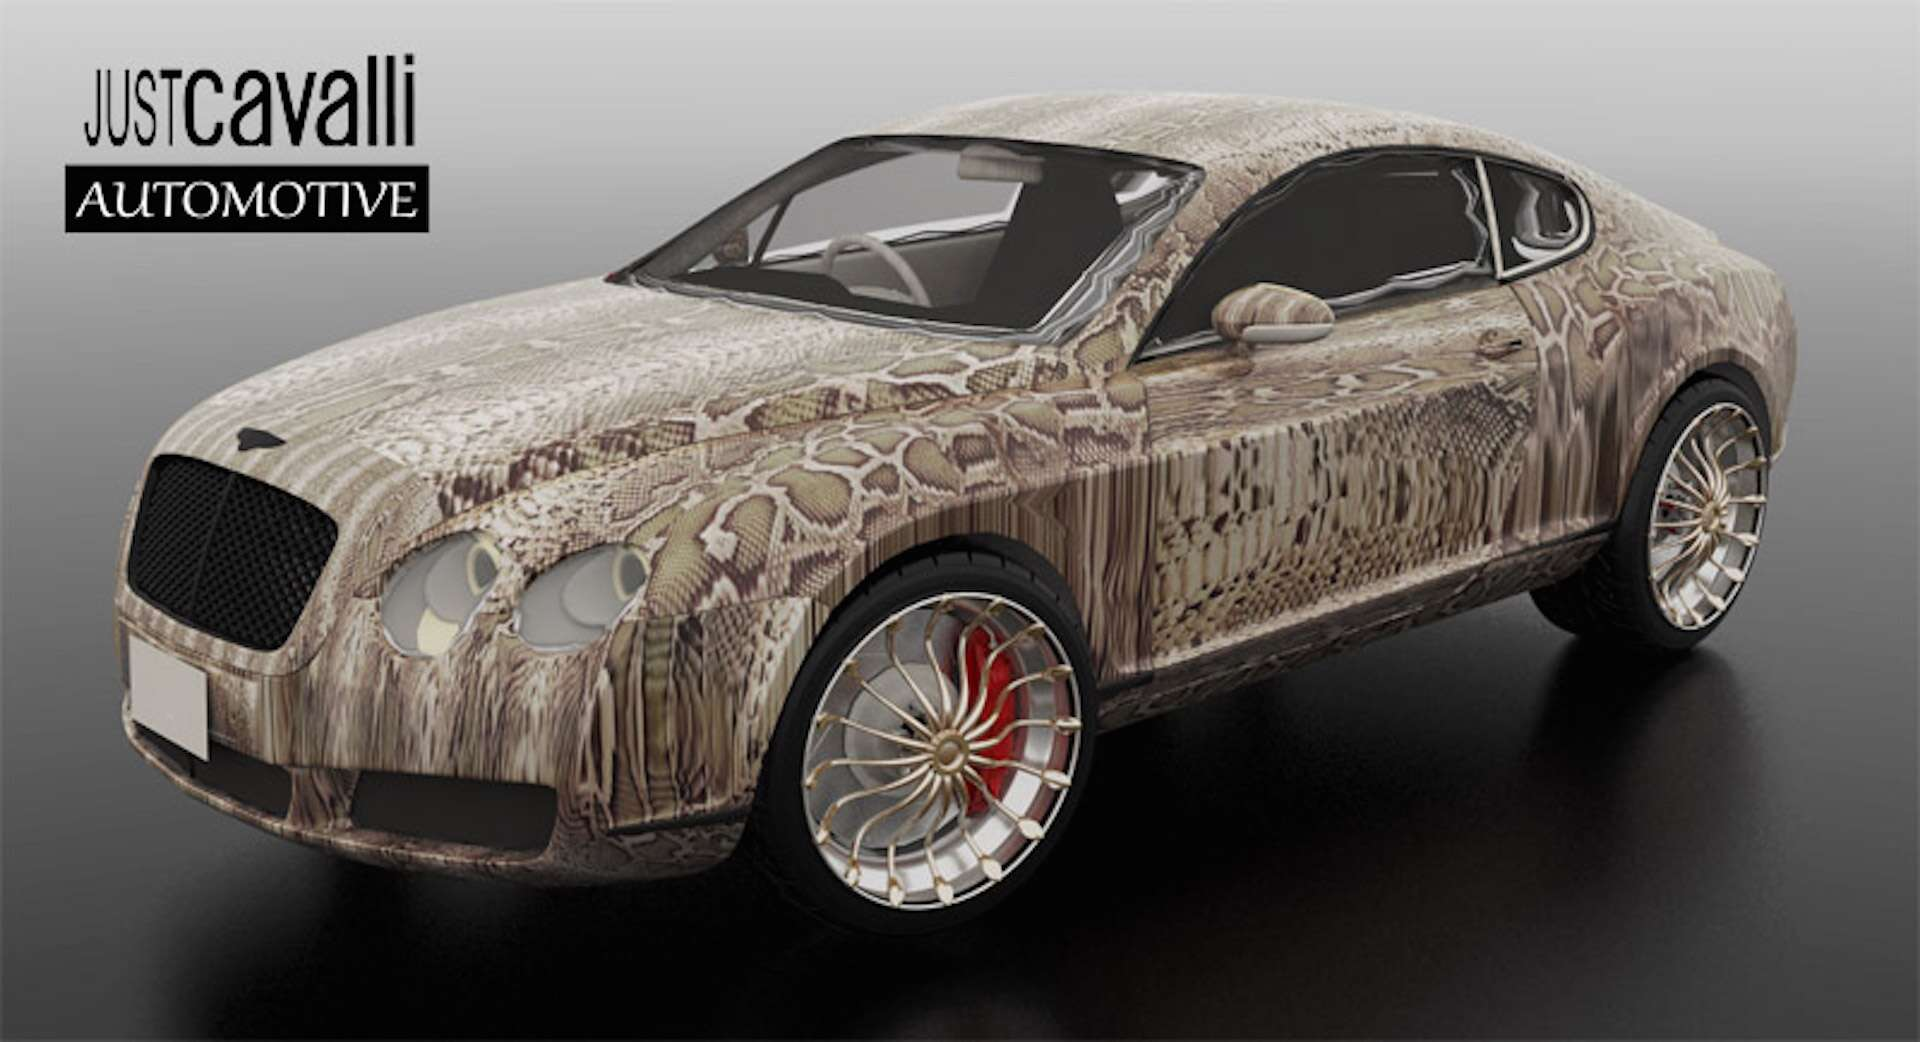 These Animal Printed Cavalli Luxury Cars Are Something Else The Drive